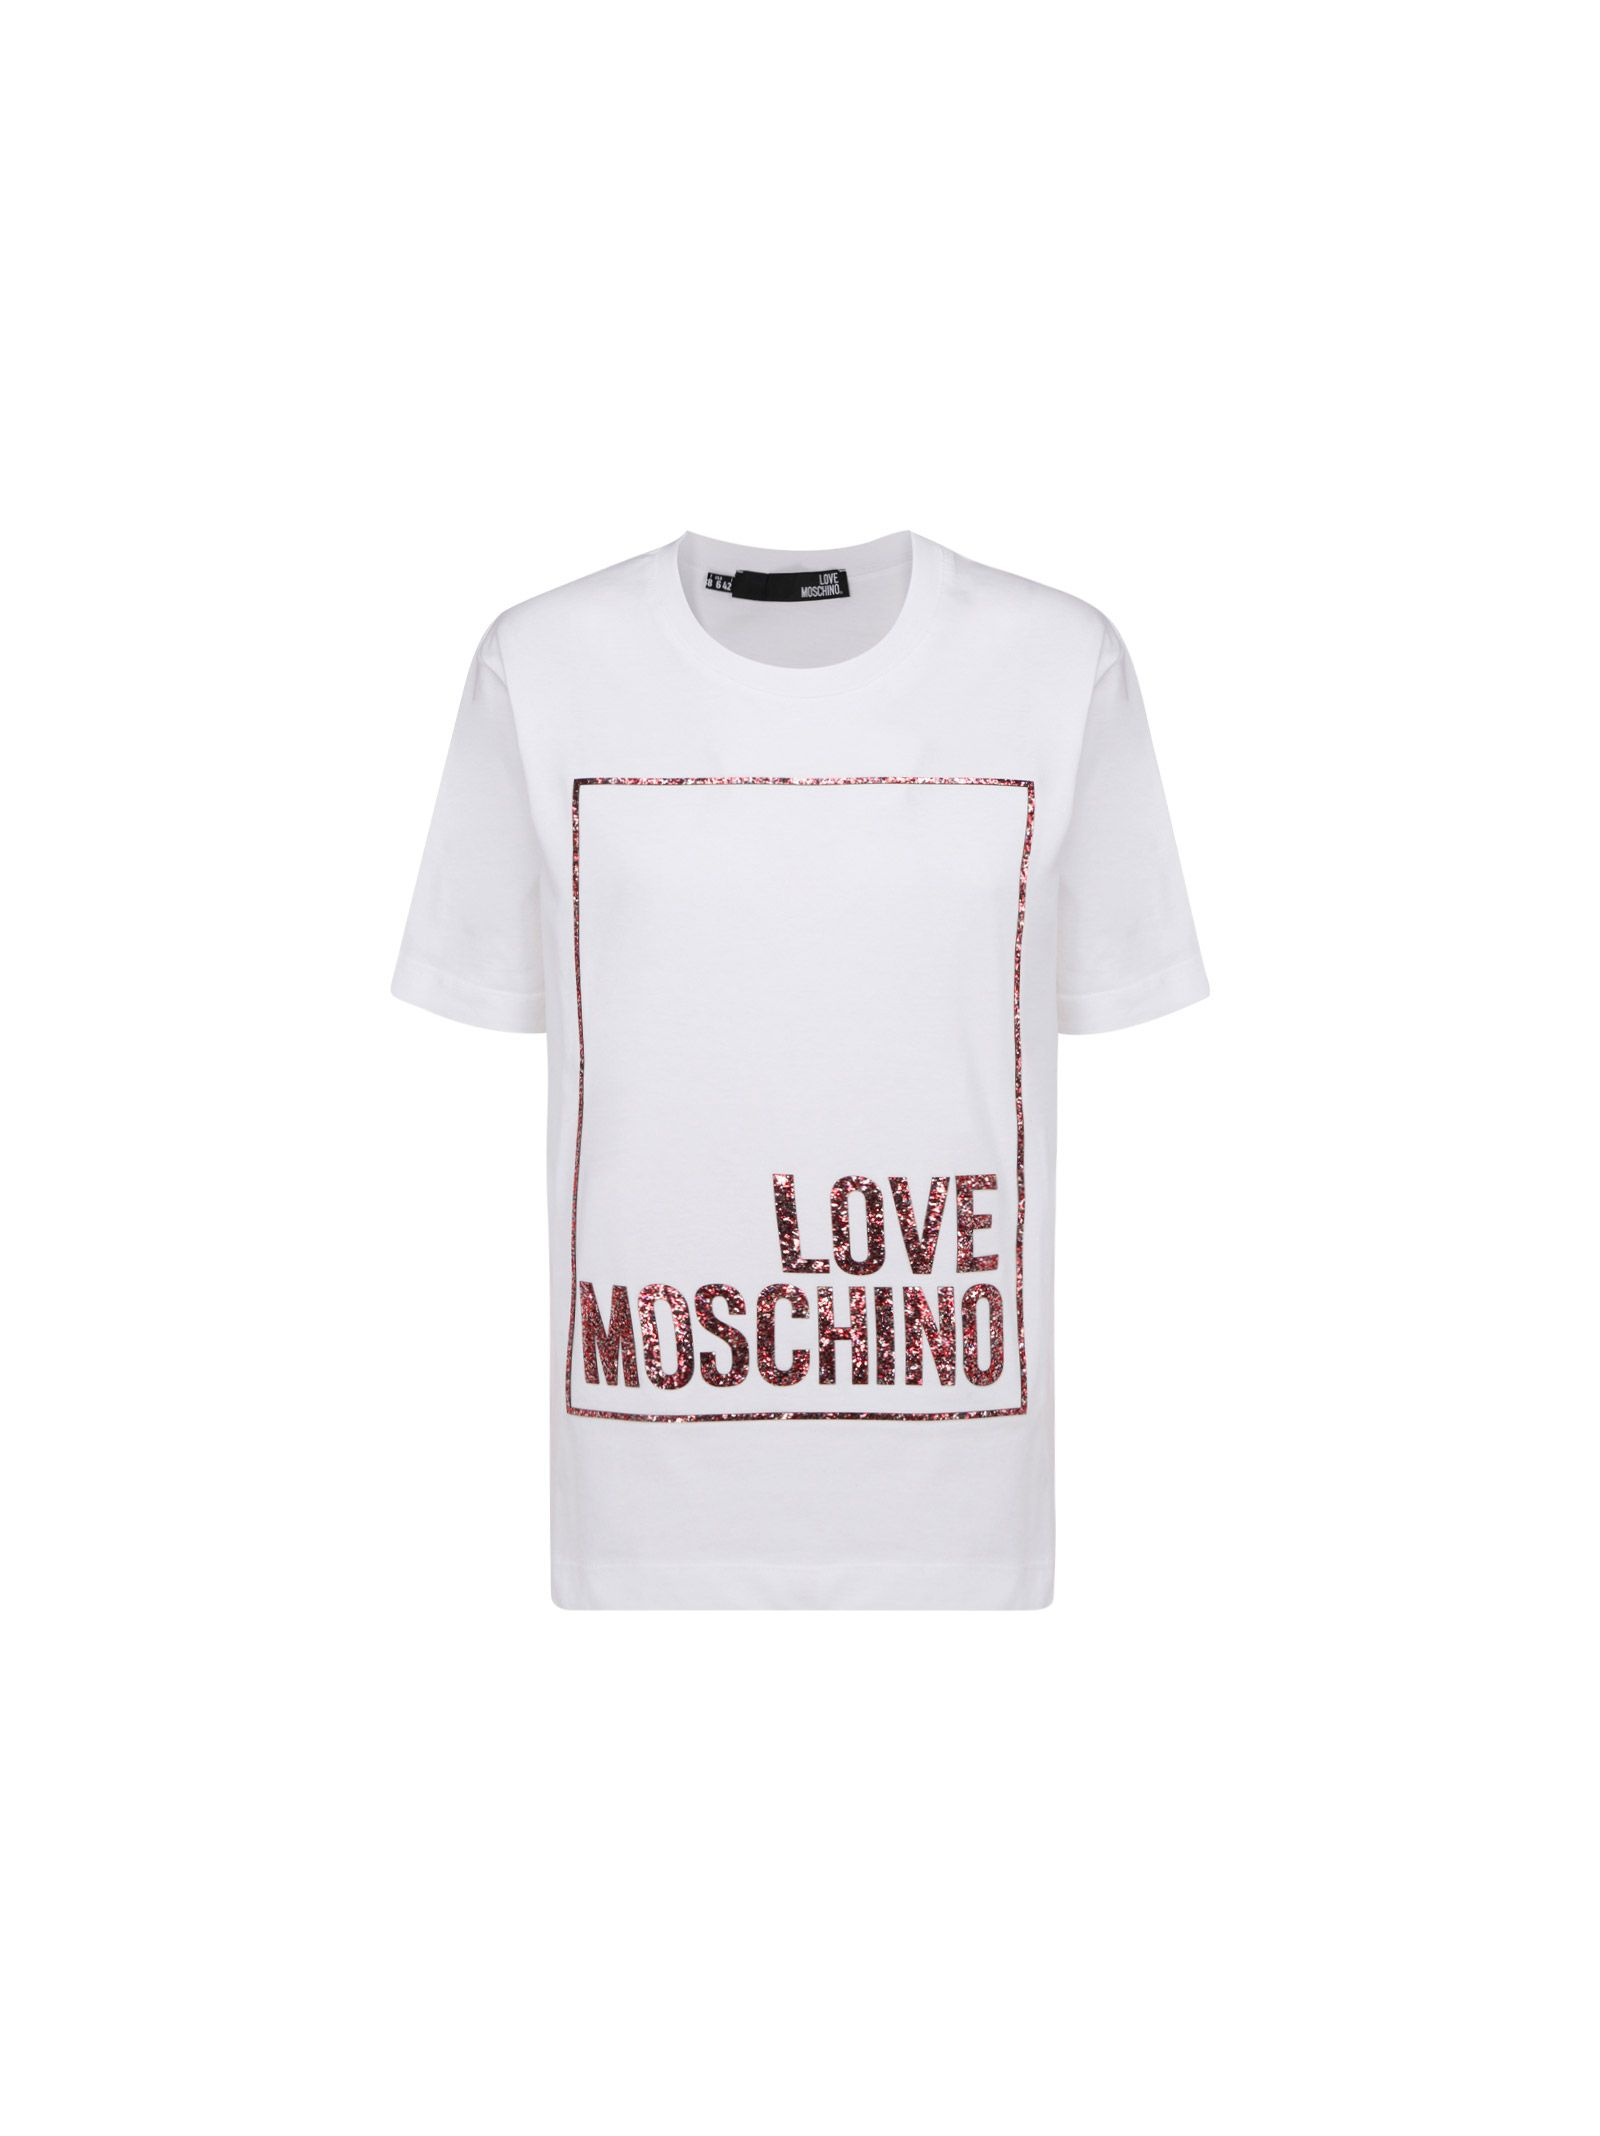 Love Moschino Cottons LOVE MOSCHINO WOMEN'S WHITE OTHER MATERIALS T-SHIRT